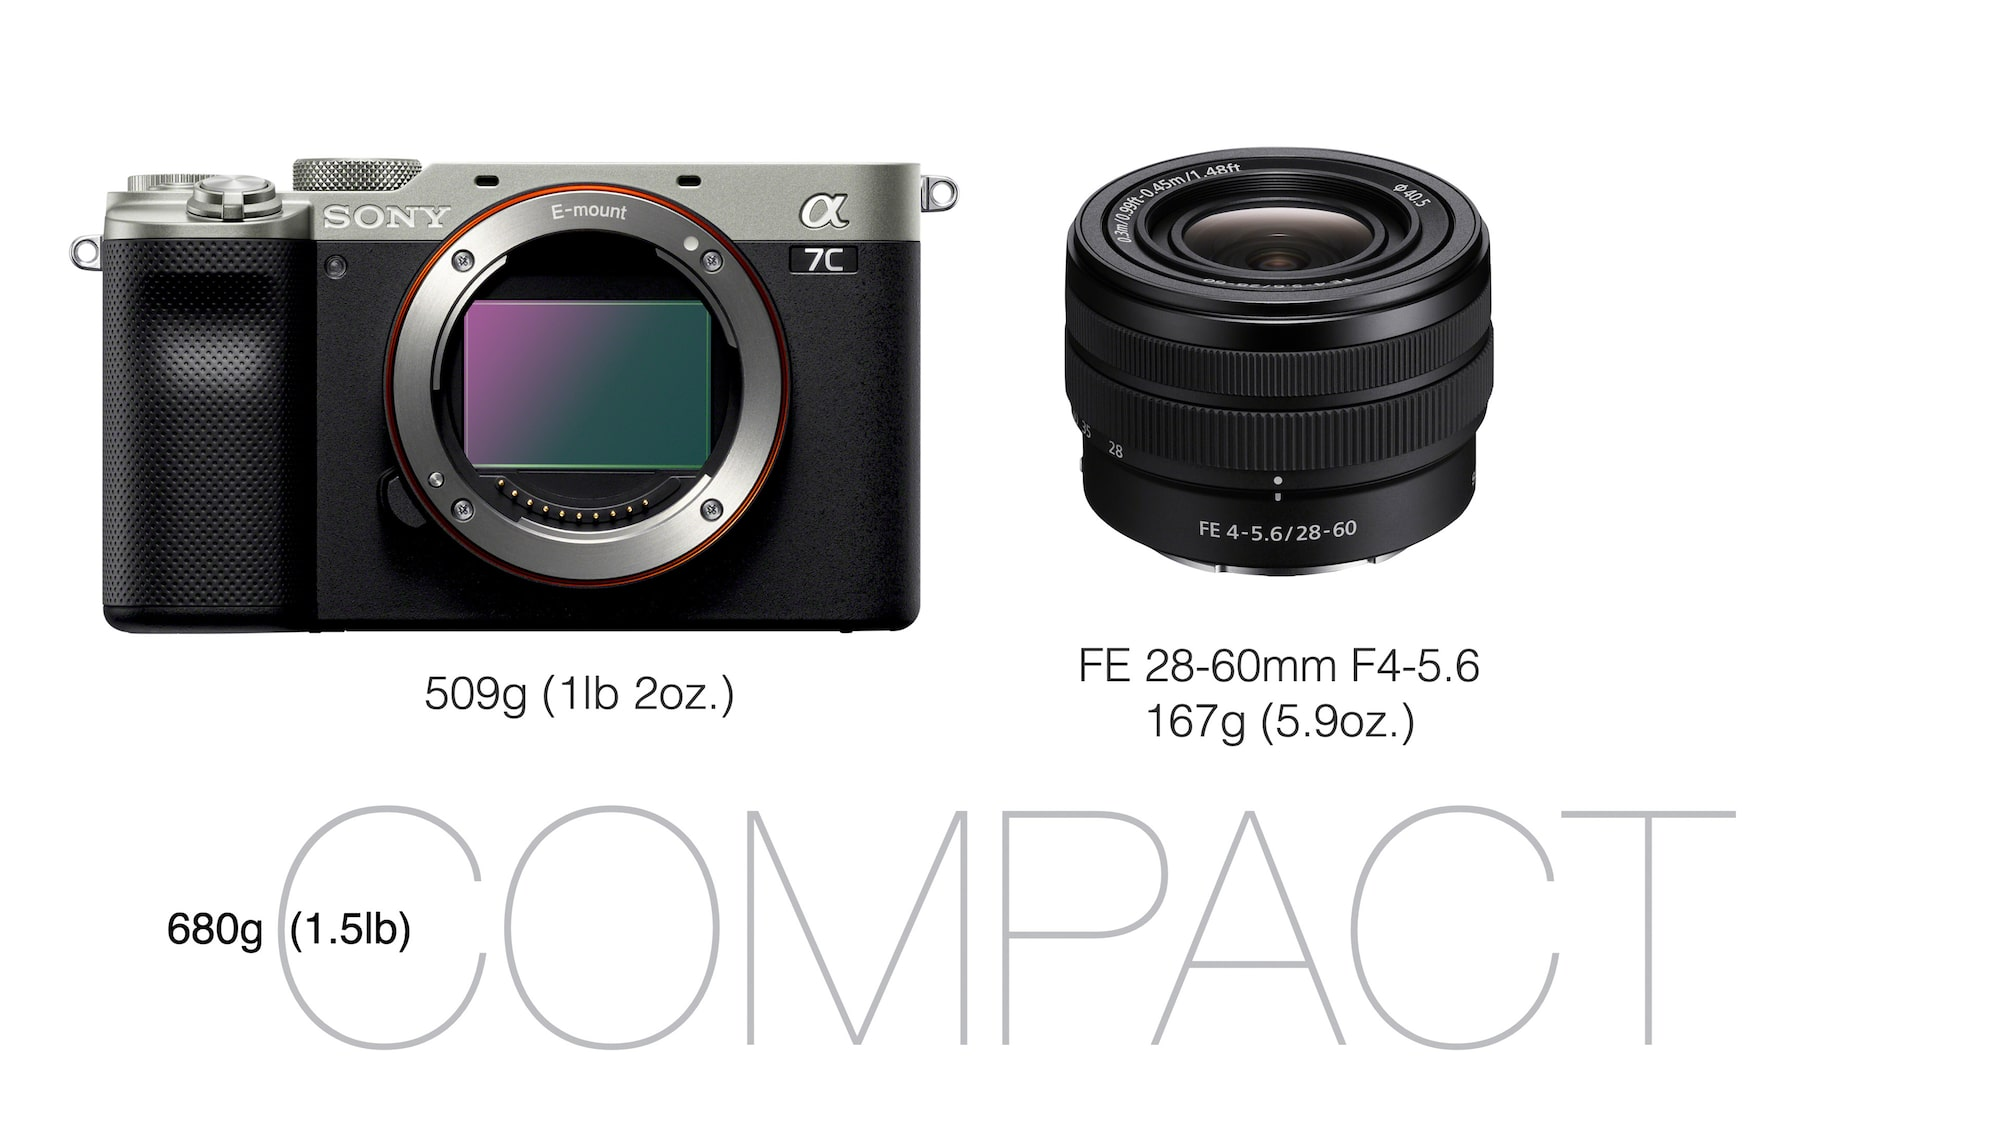 Alpha 7C and FE 28-60mm F4-5.6 lens